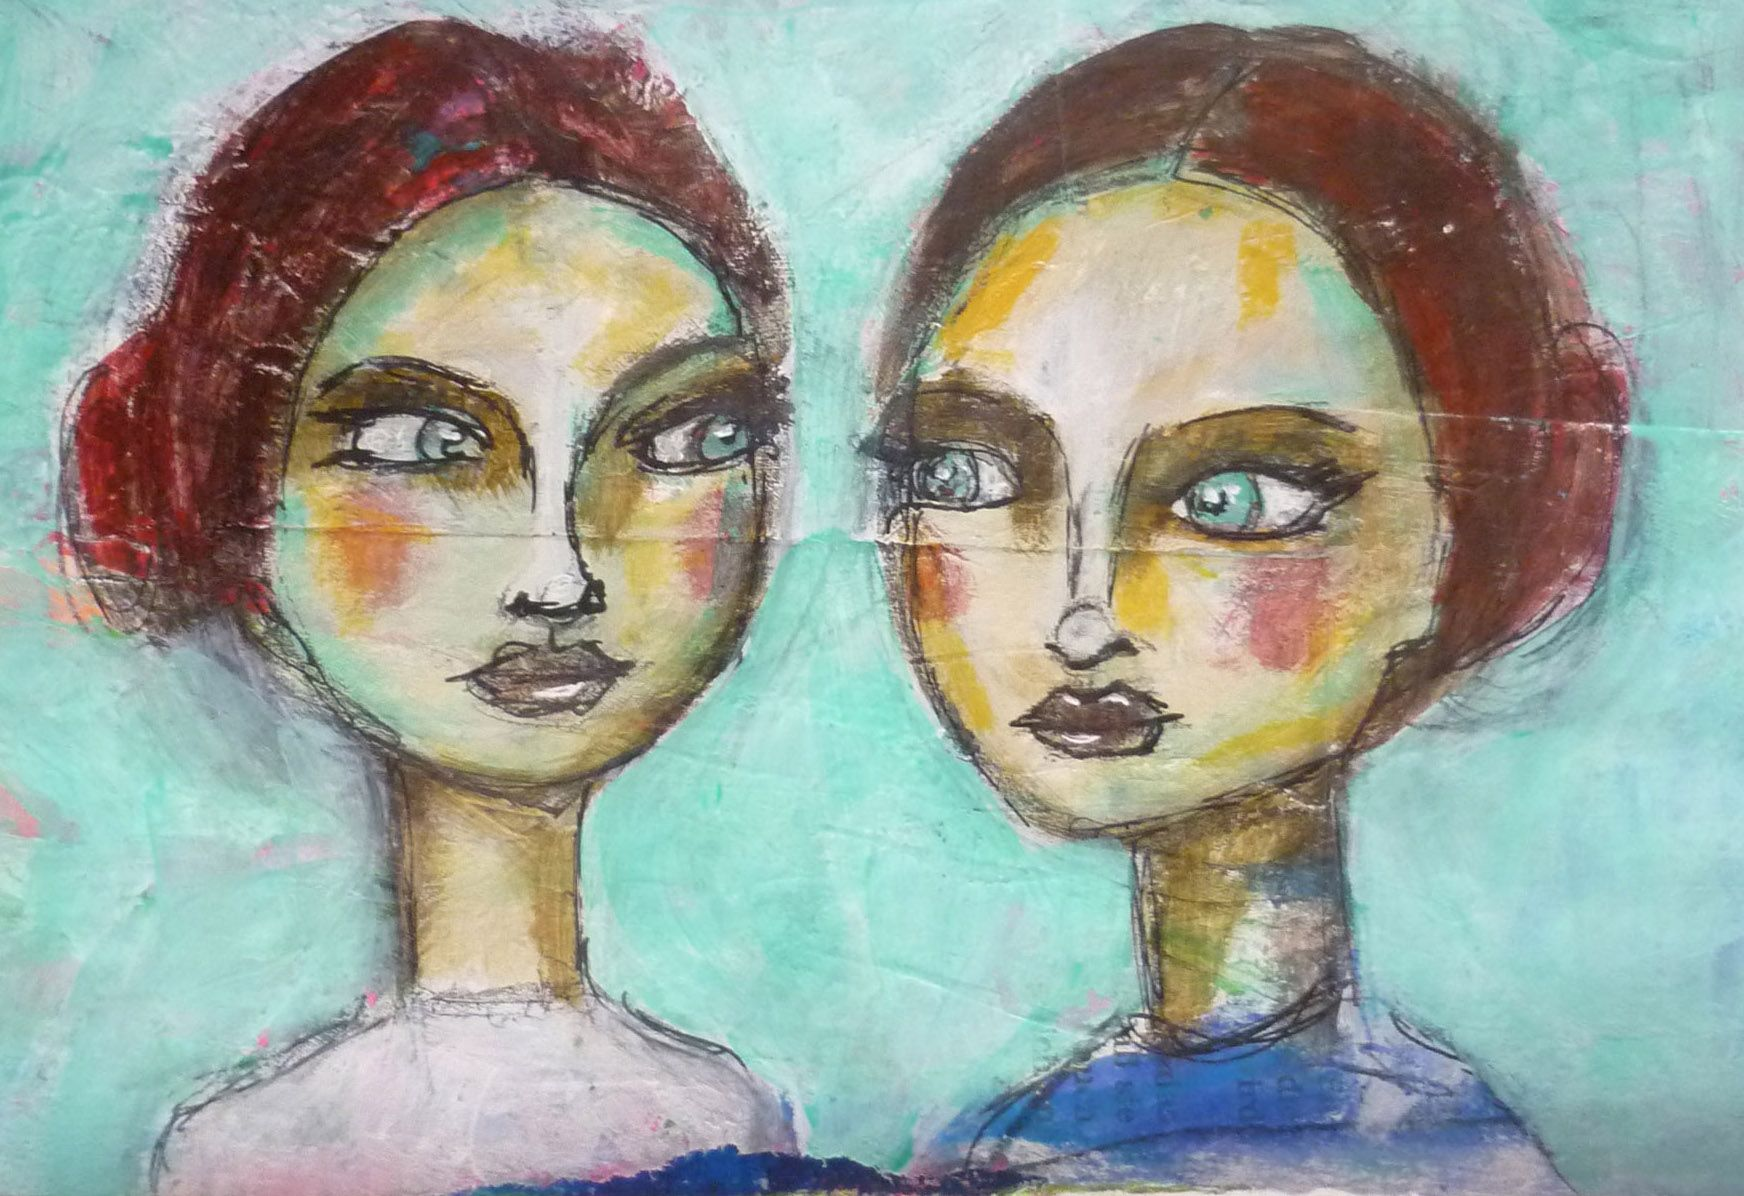 sisters Portrait of a woman, Acrylic painting, Mixed Media Art, Benedicte 2015